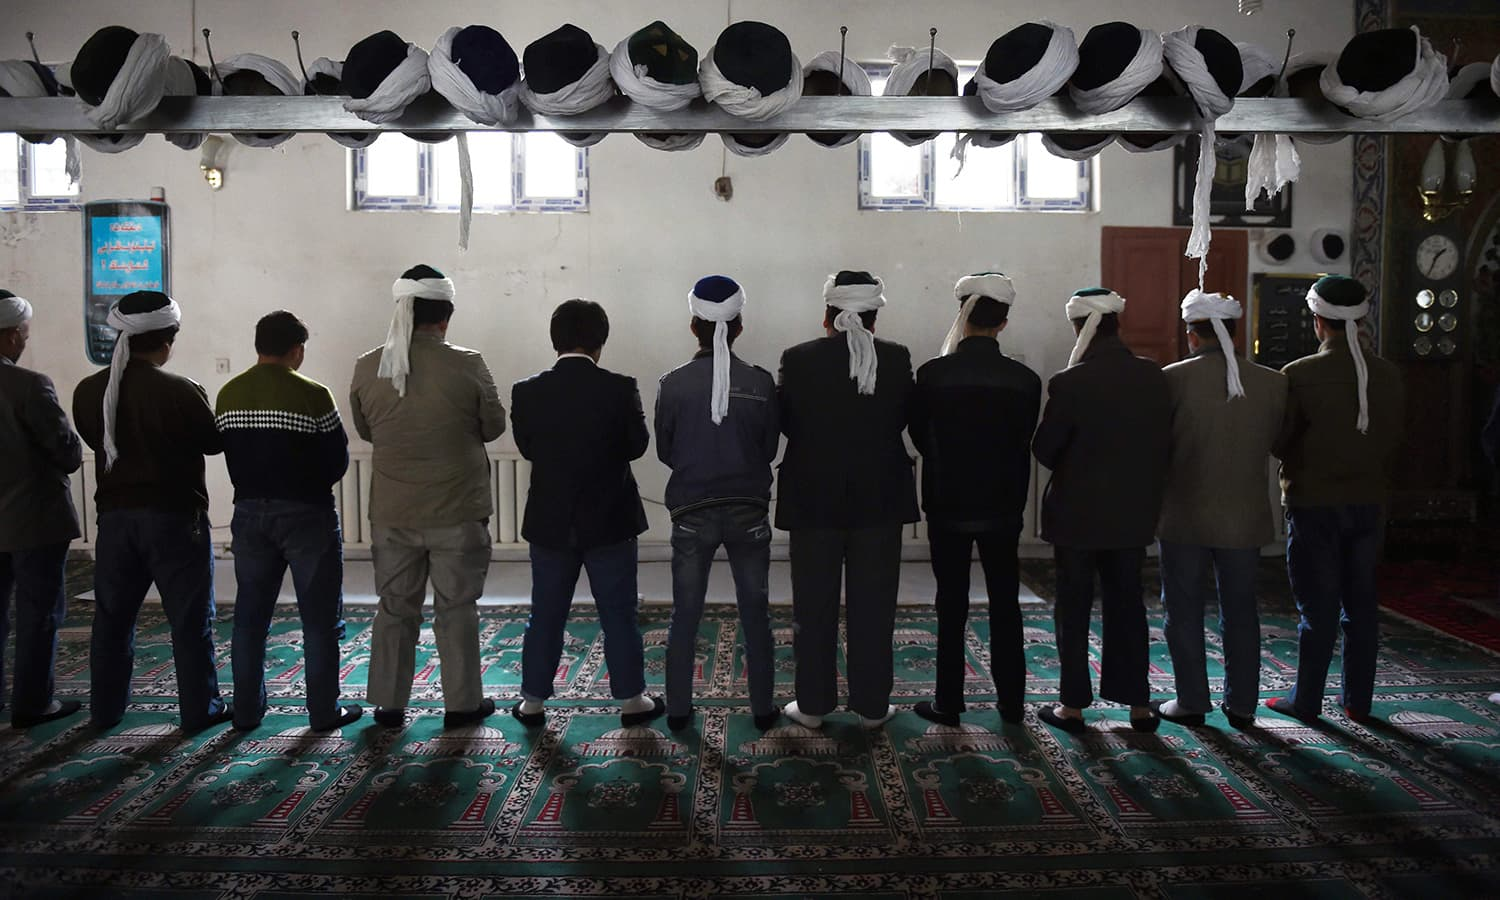 Uighur men pray in a mosque in Hotan, in China's western Xinjiang region in this 2015 file photo. — AFP